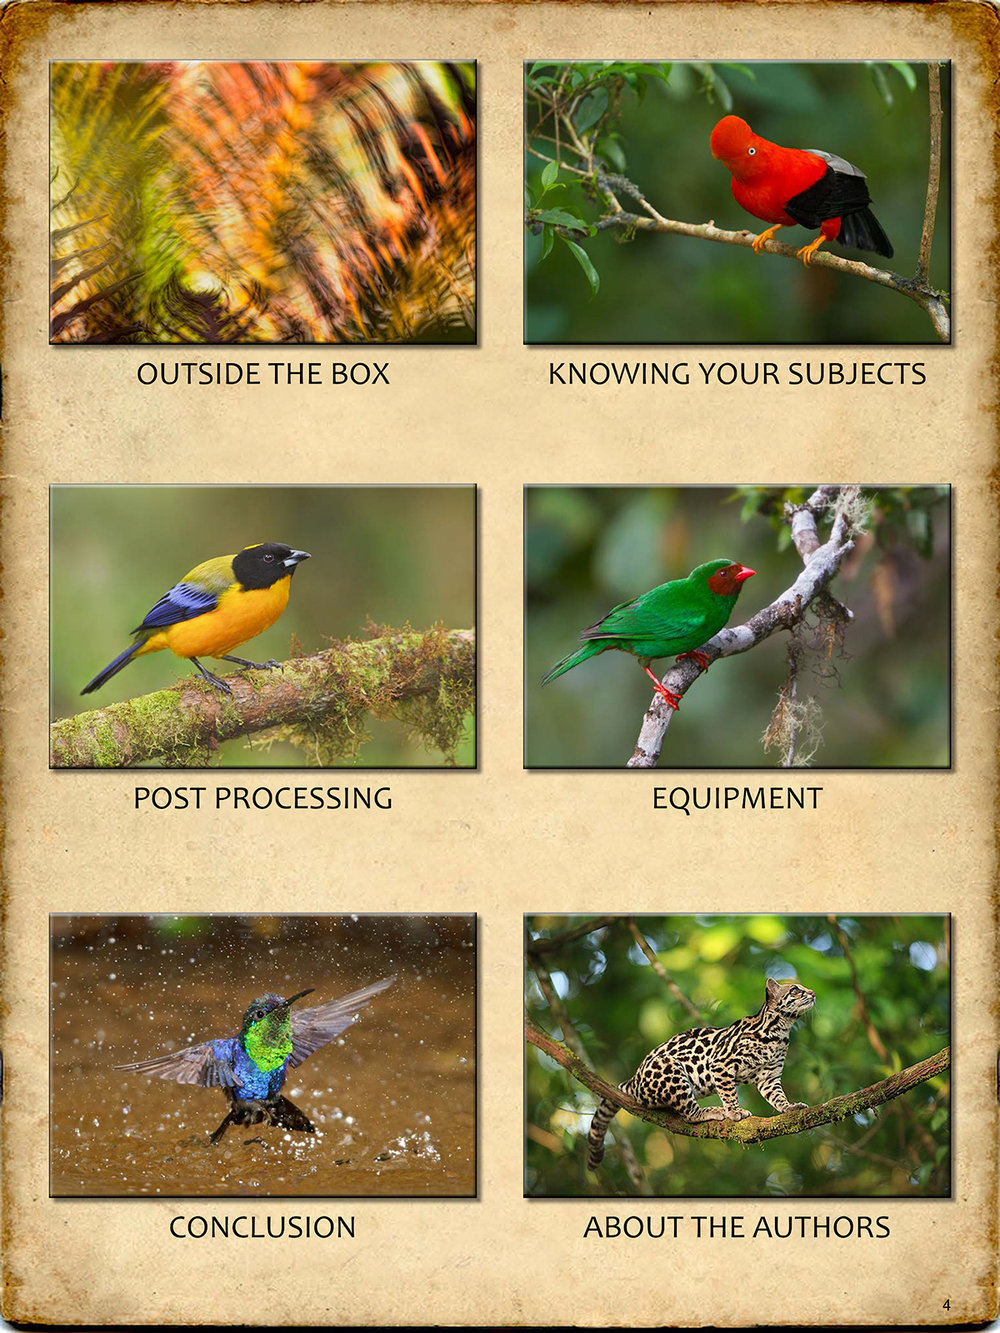 THE-GUIDE-TO-TROPICAL-NATURE-PHOTOGRAPHY-sample4.jpg